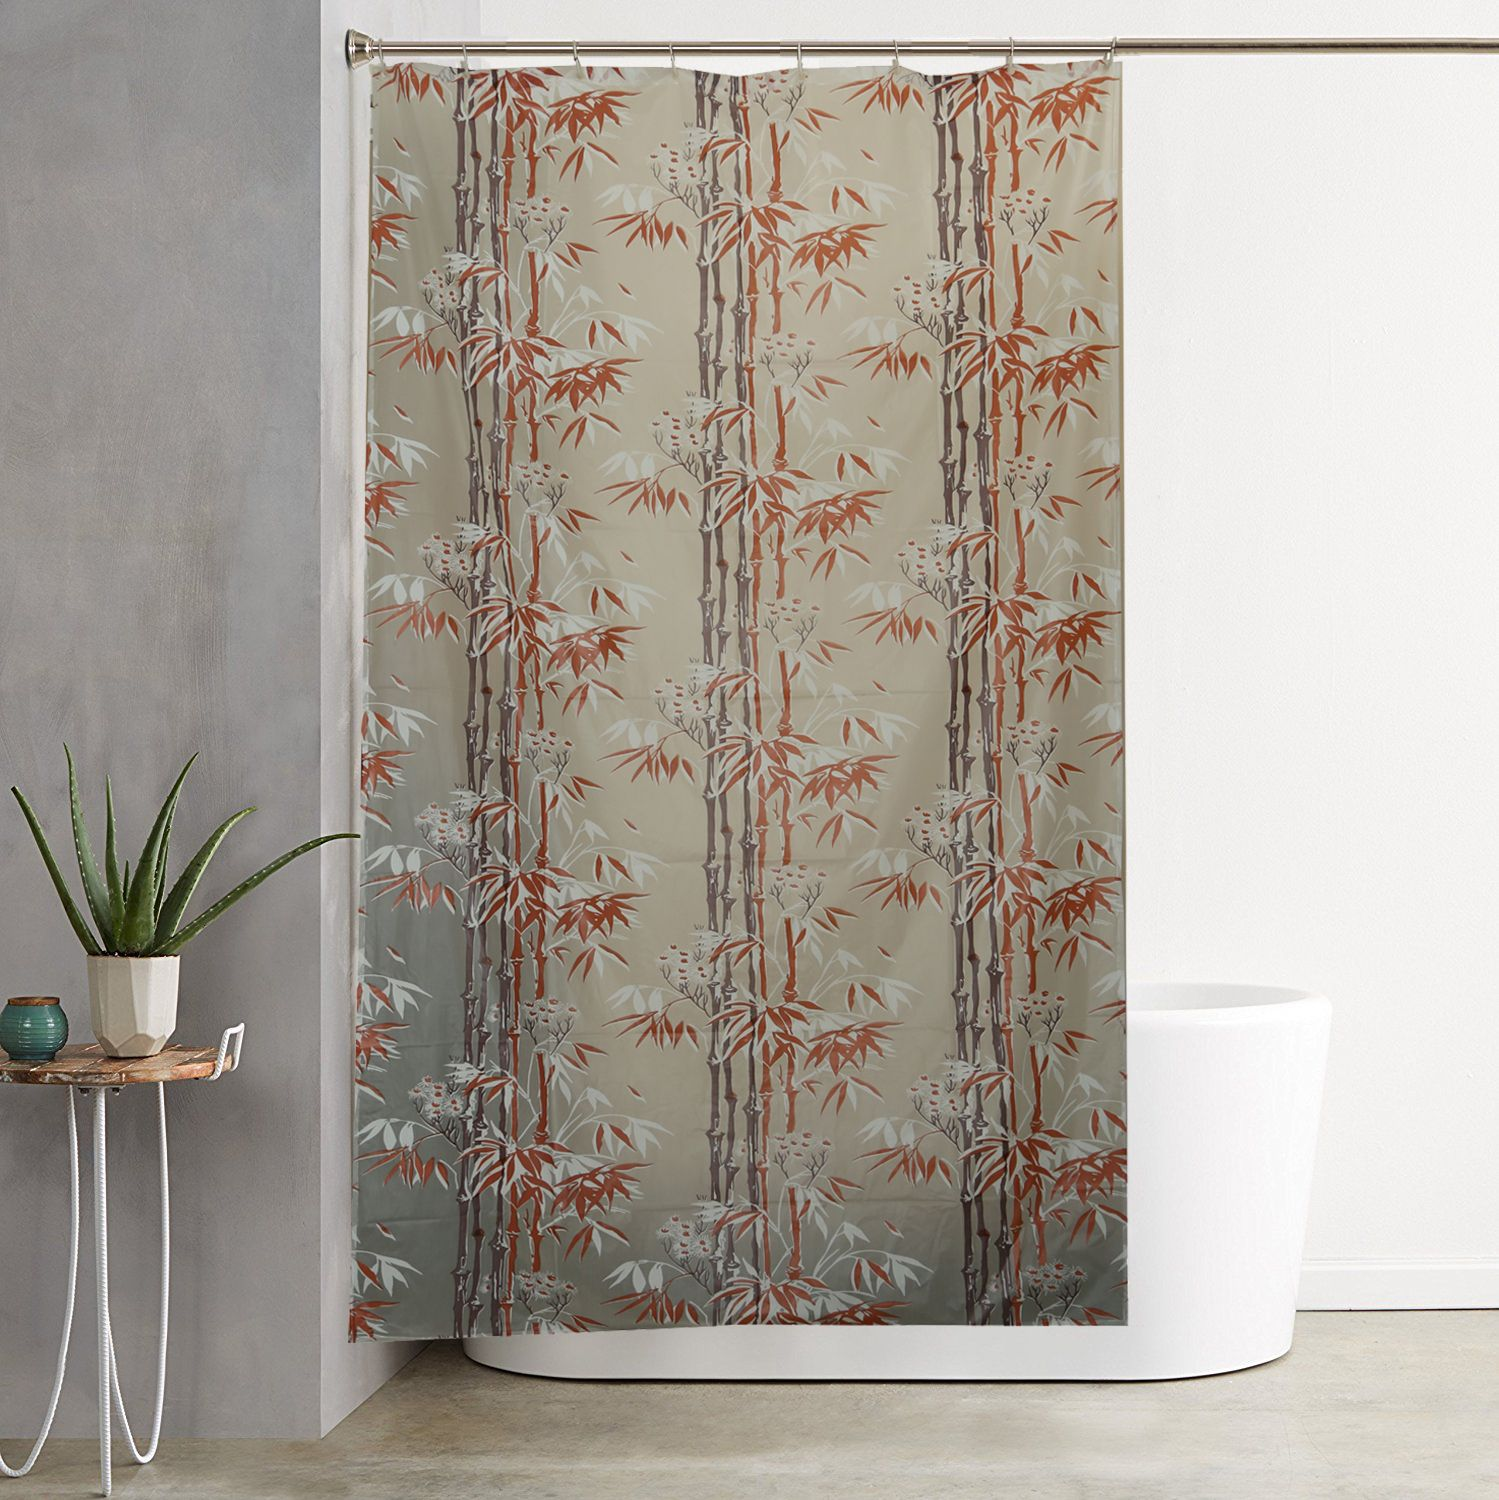 Kuber IndustriesTM Green Floral Design PVC Premium Shower Curtain